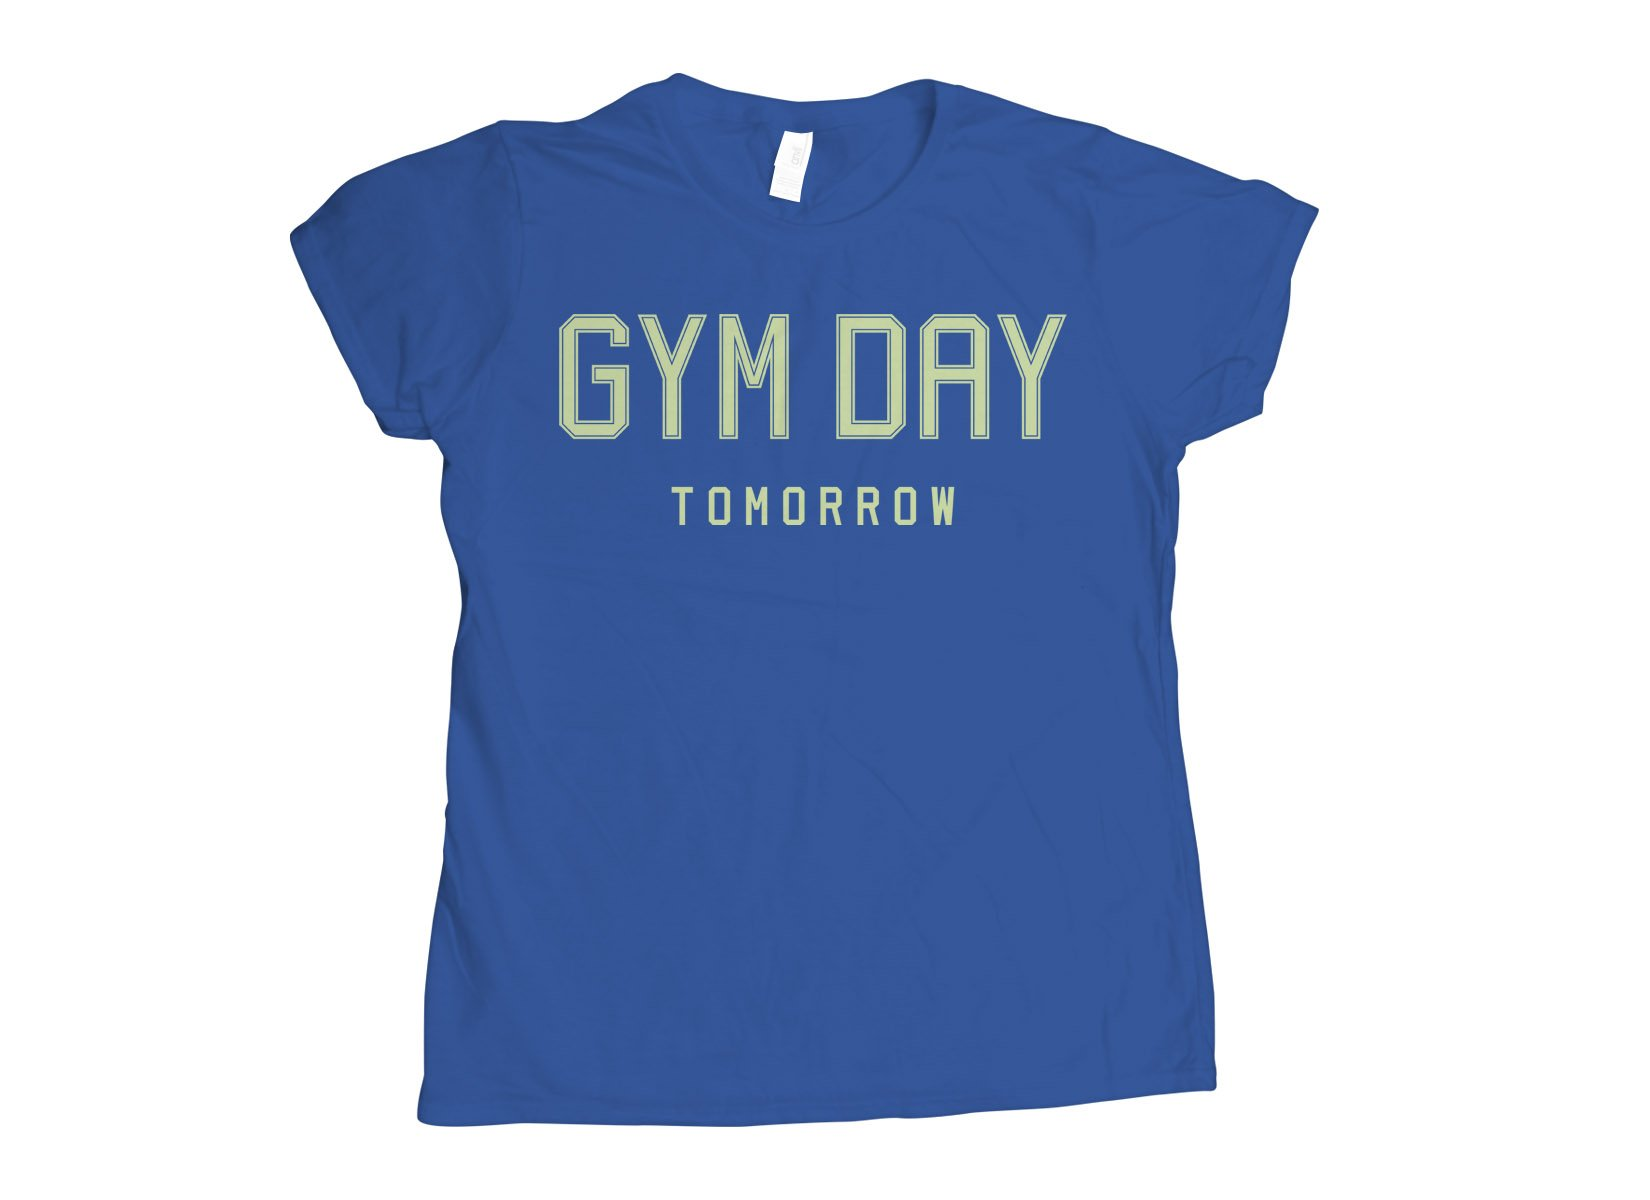 Gym Day Tomorrow on Womens T-Shirt